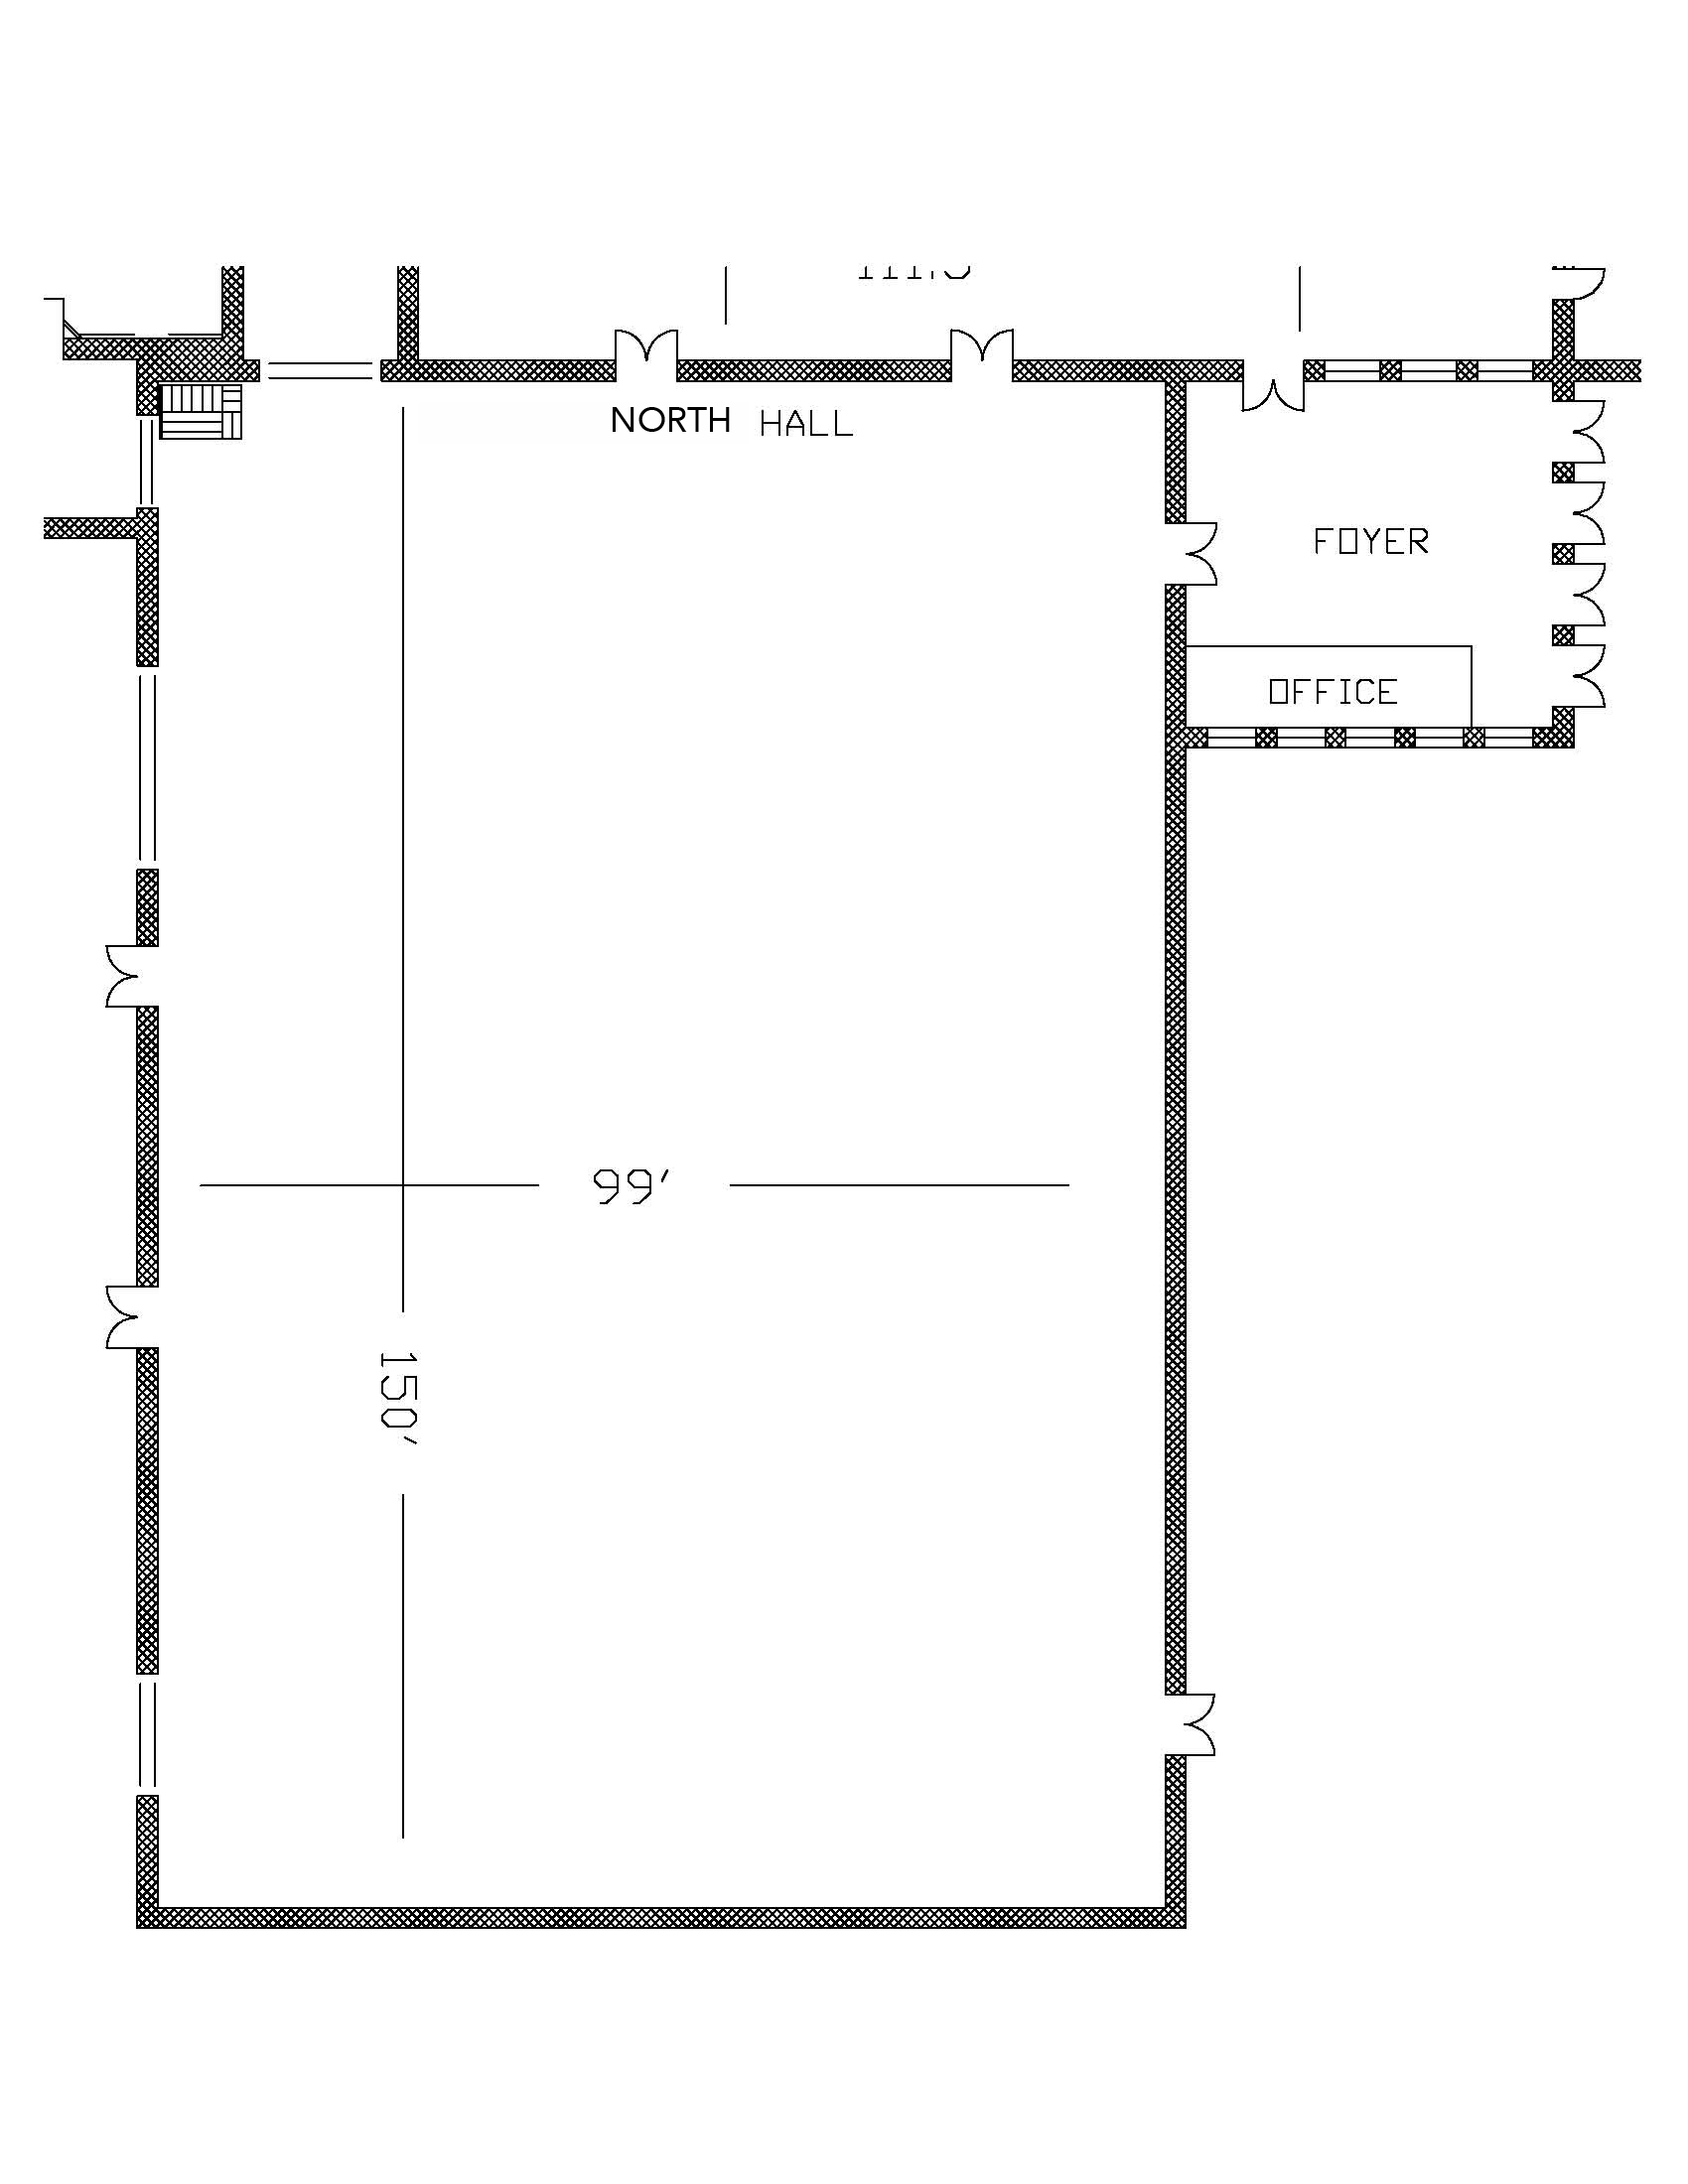 North Hall - Floor Plan